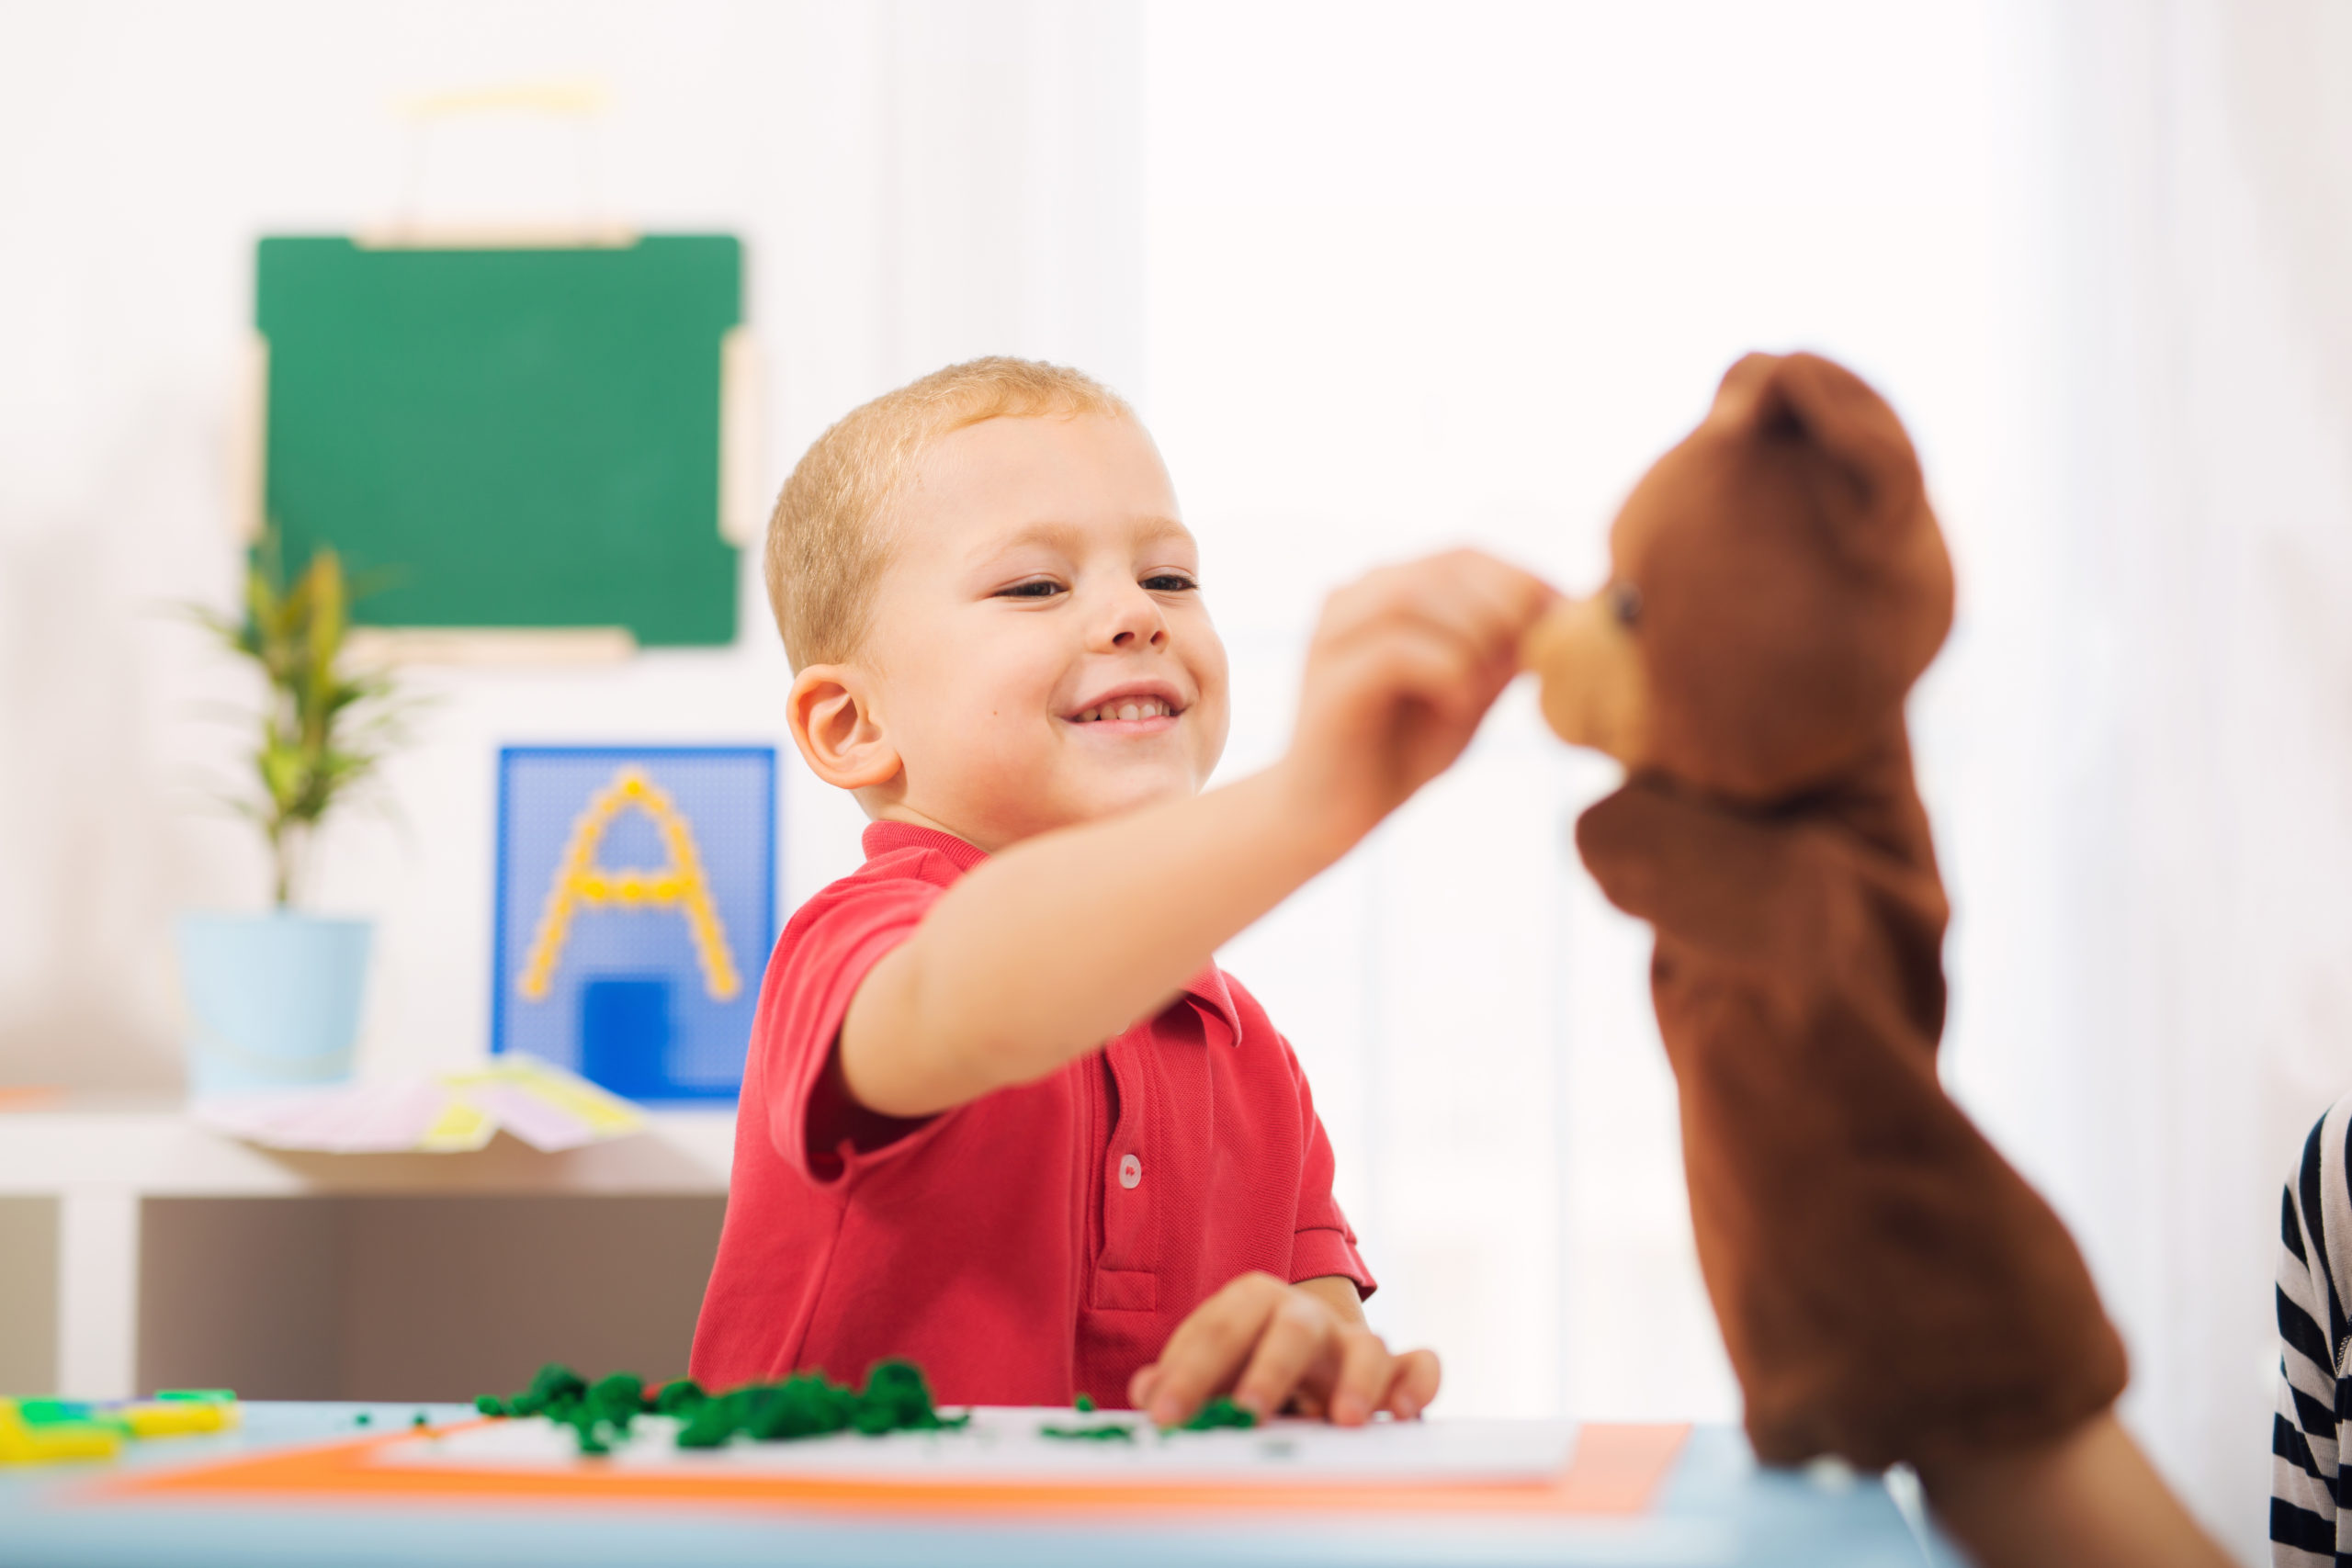 Little boy during lesson playing with a bear puppet